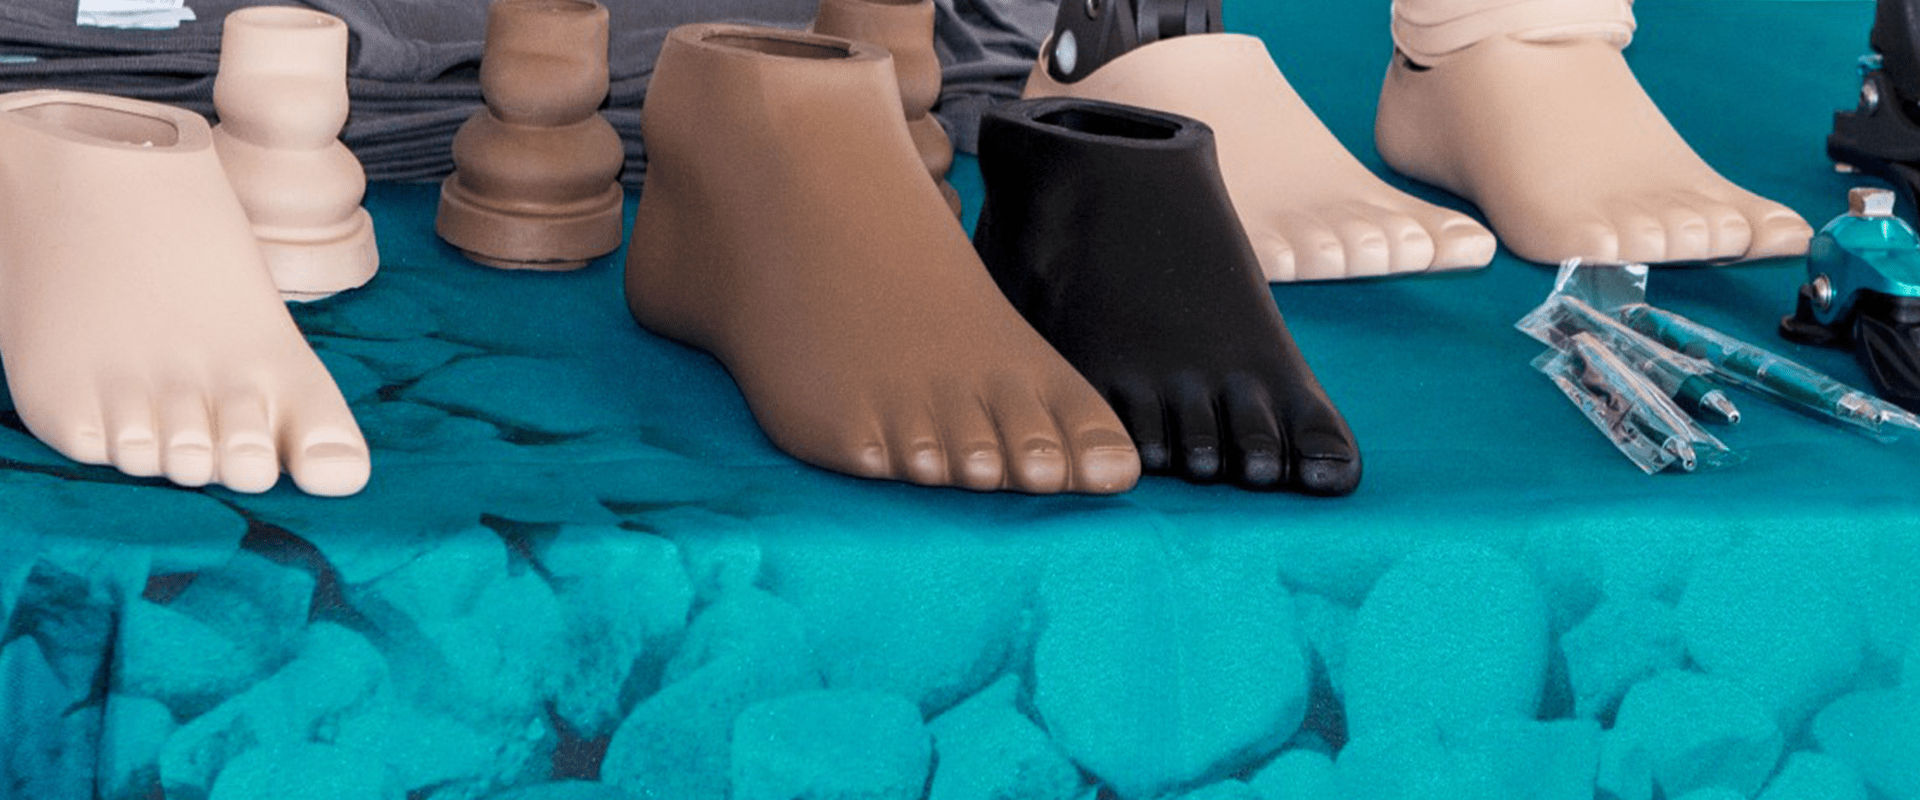 Rethinking Podiatry of Africa: when amputations are not inevitable